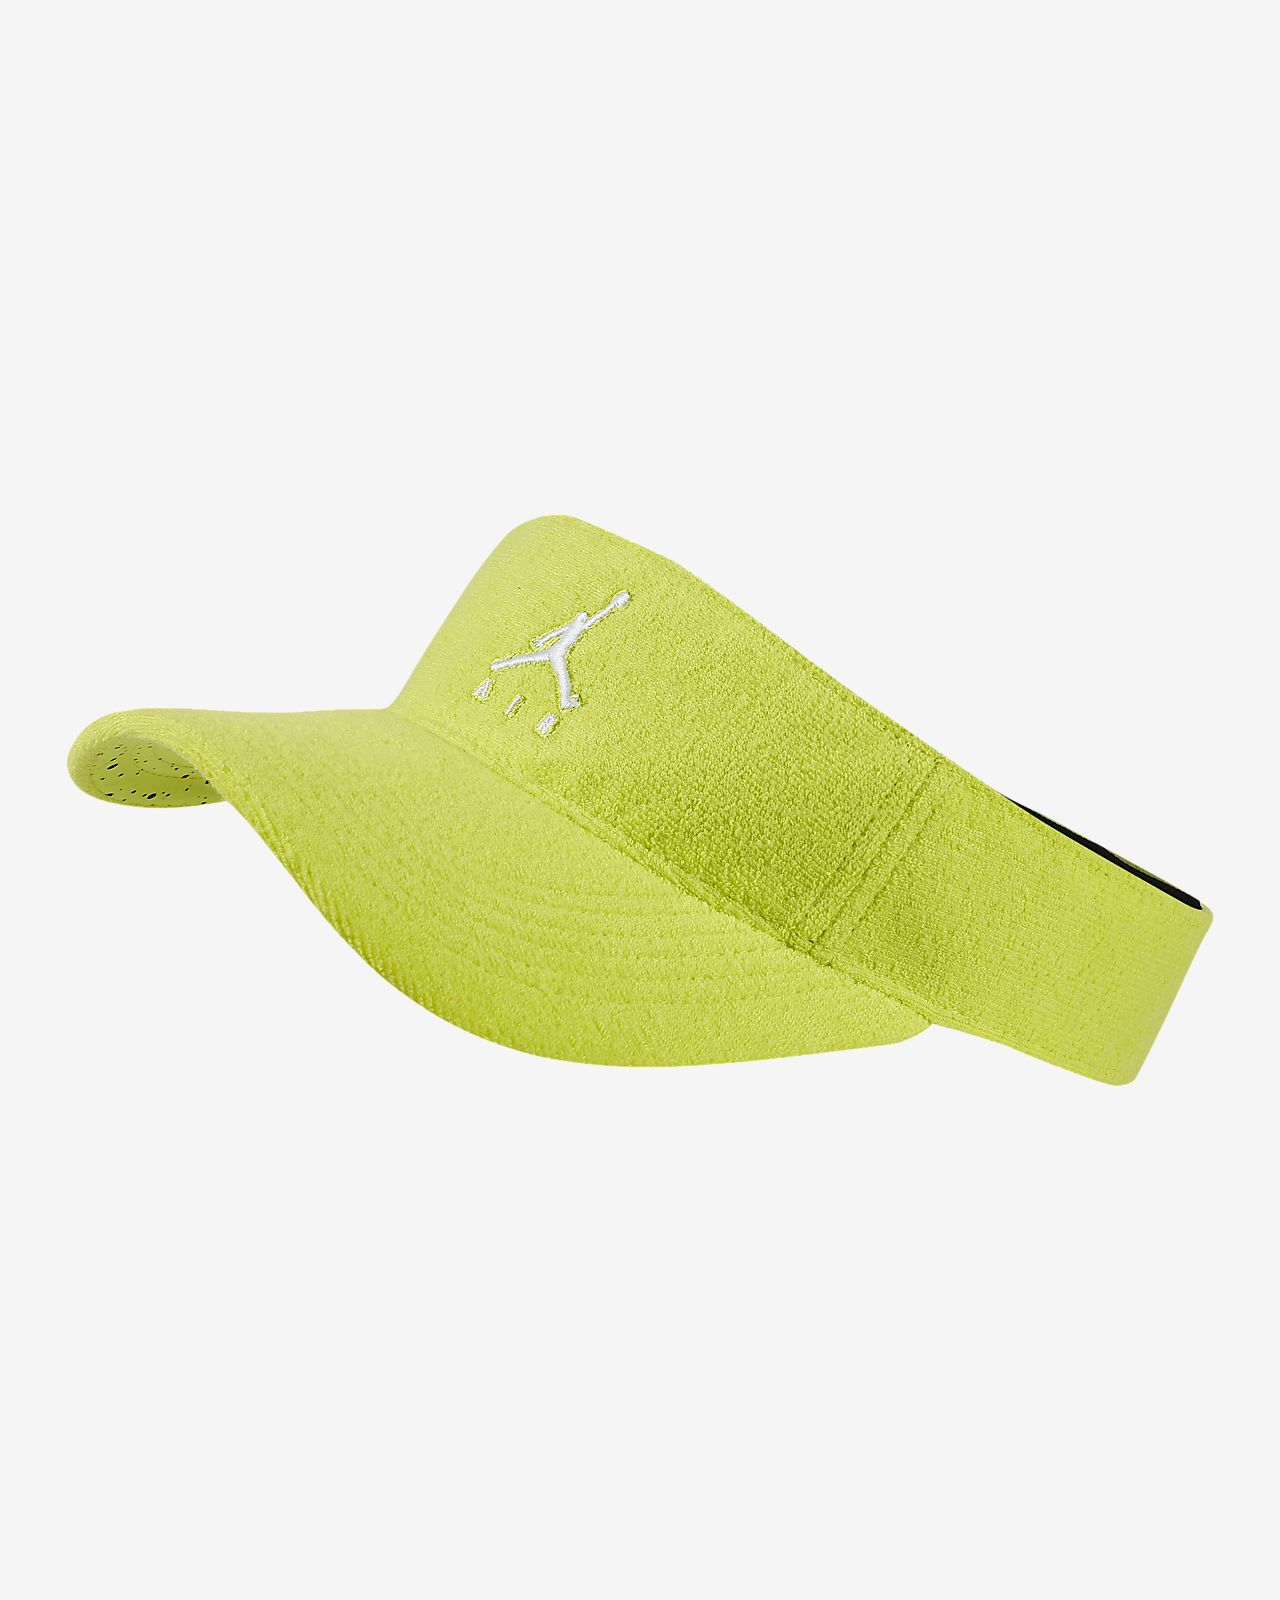 Jordan Pool Adjustable Visor